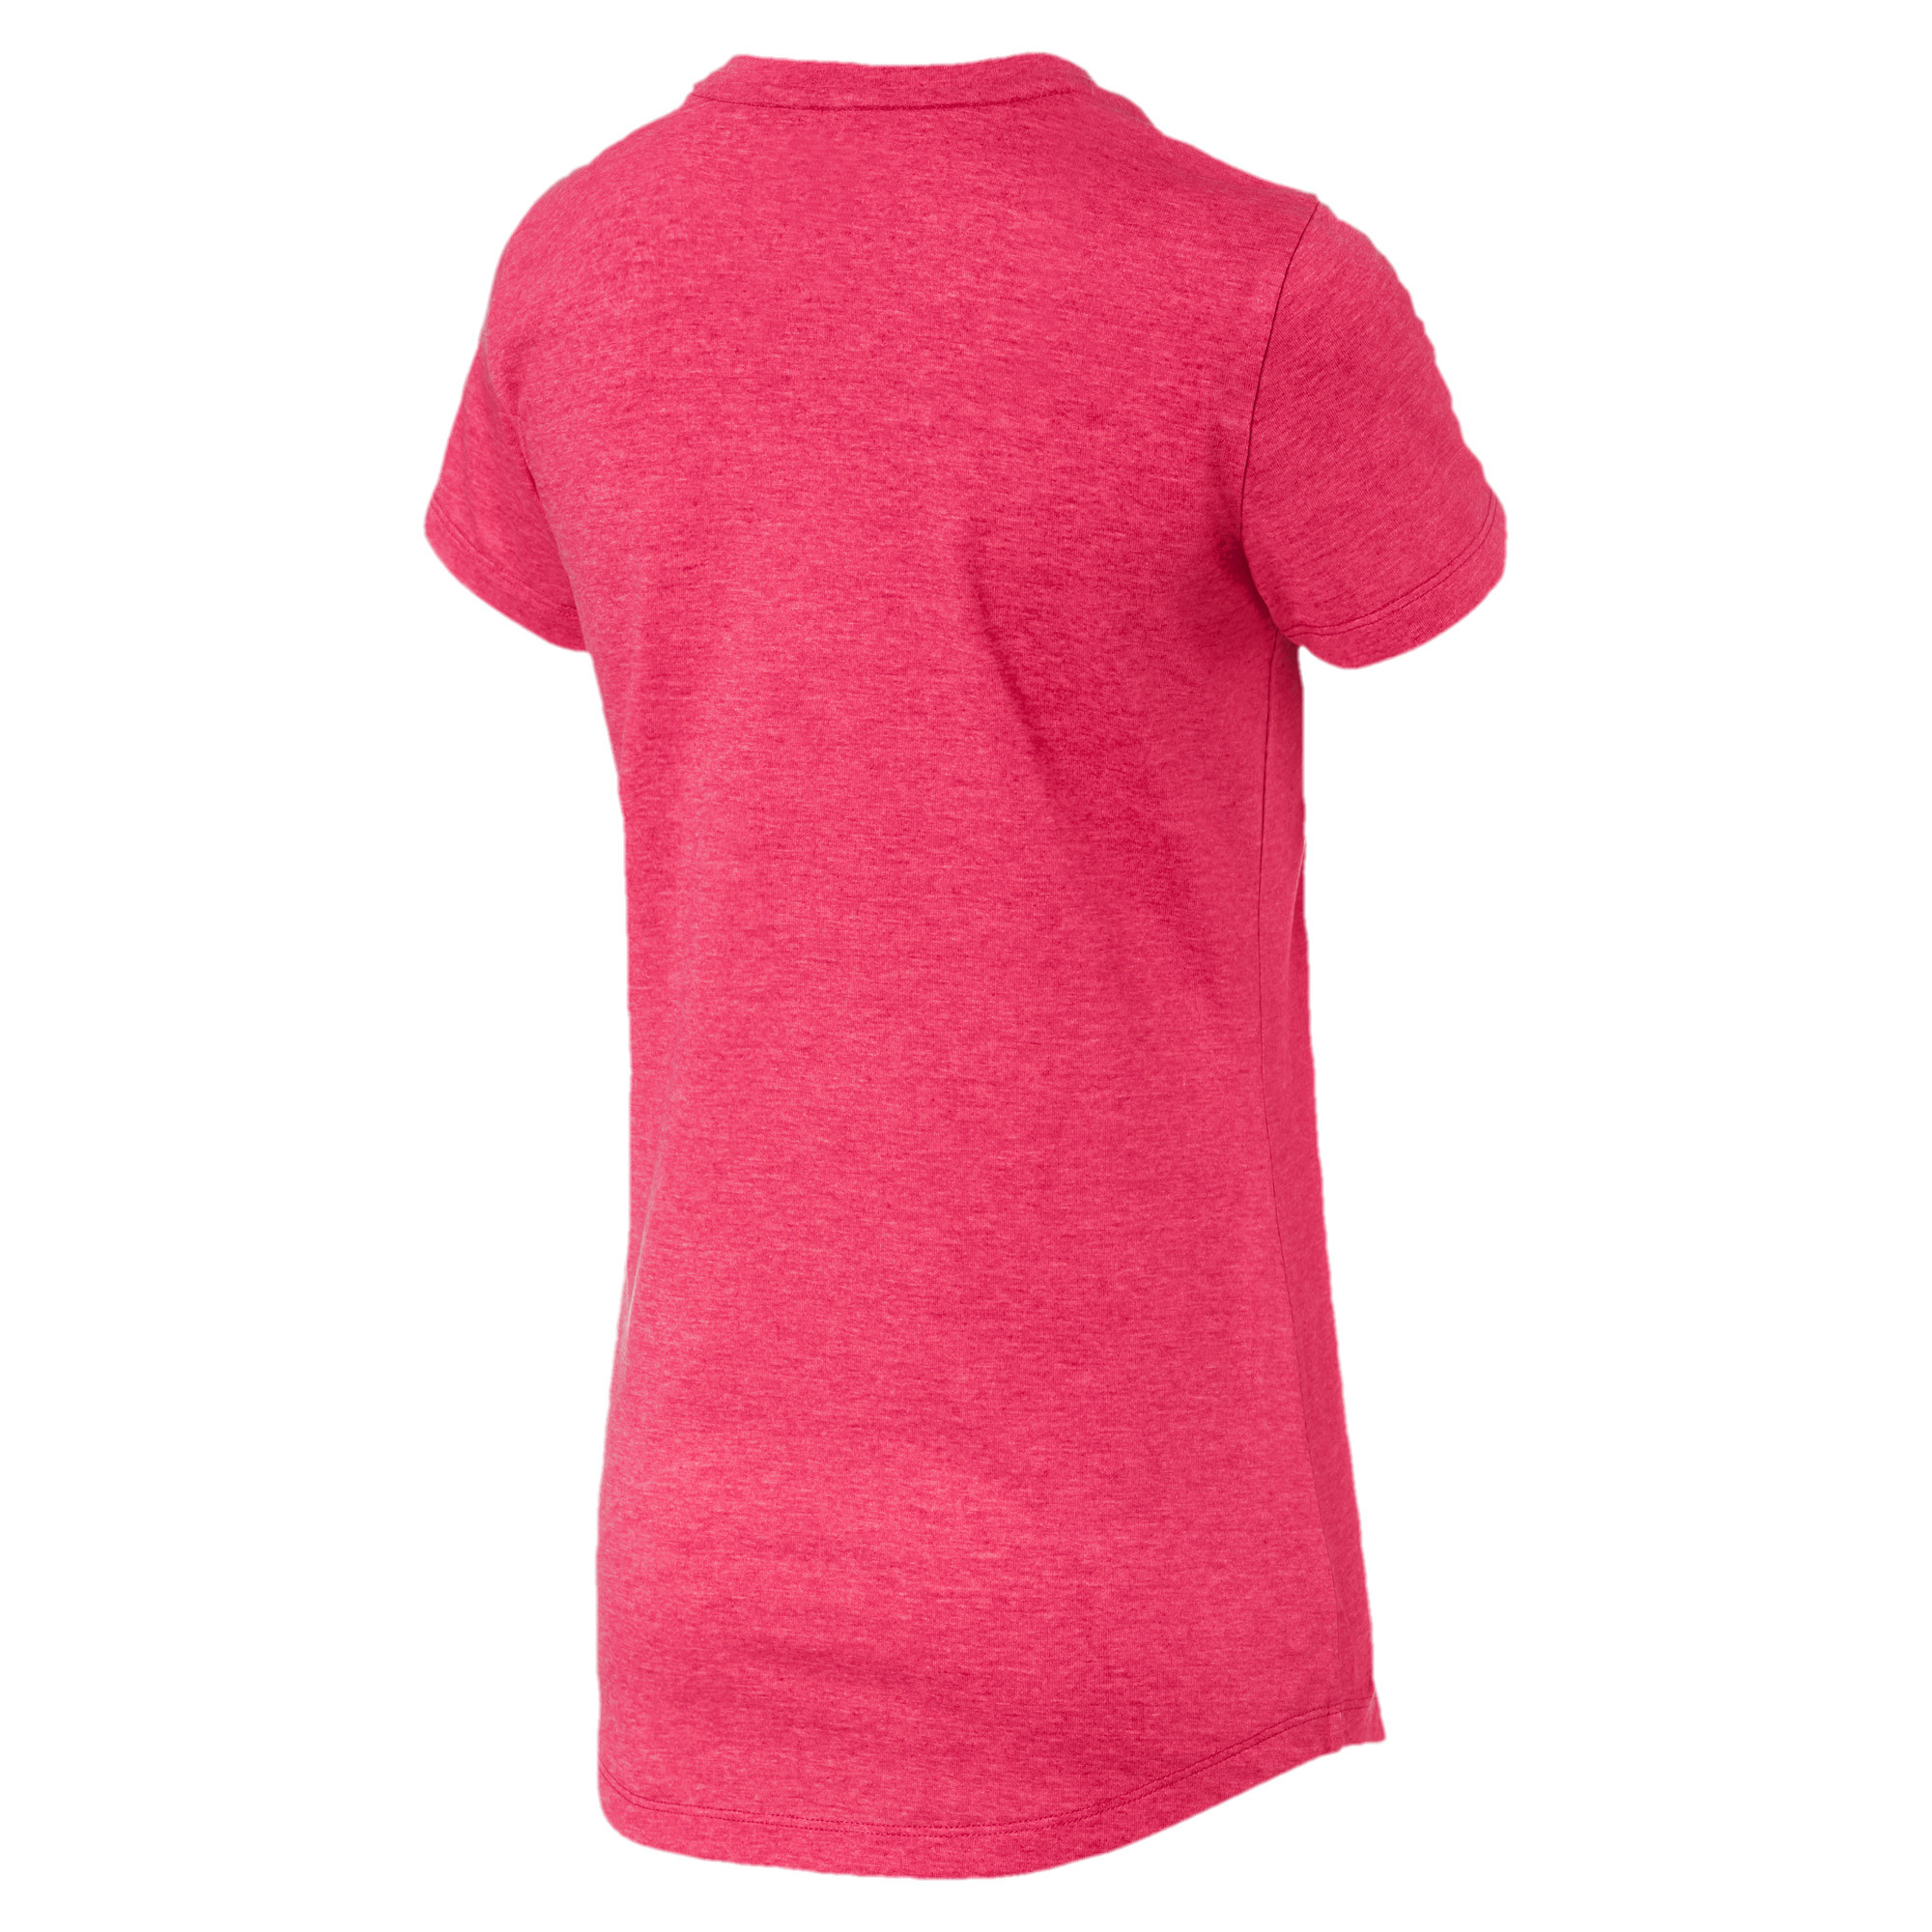 PUMA-Essentials-Women-039-s-Heather-Tee-Women-Tee-Basics thumbnail 28